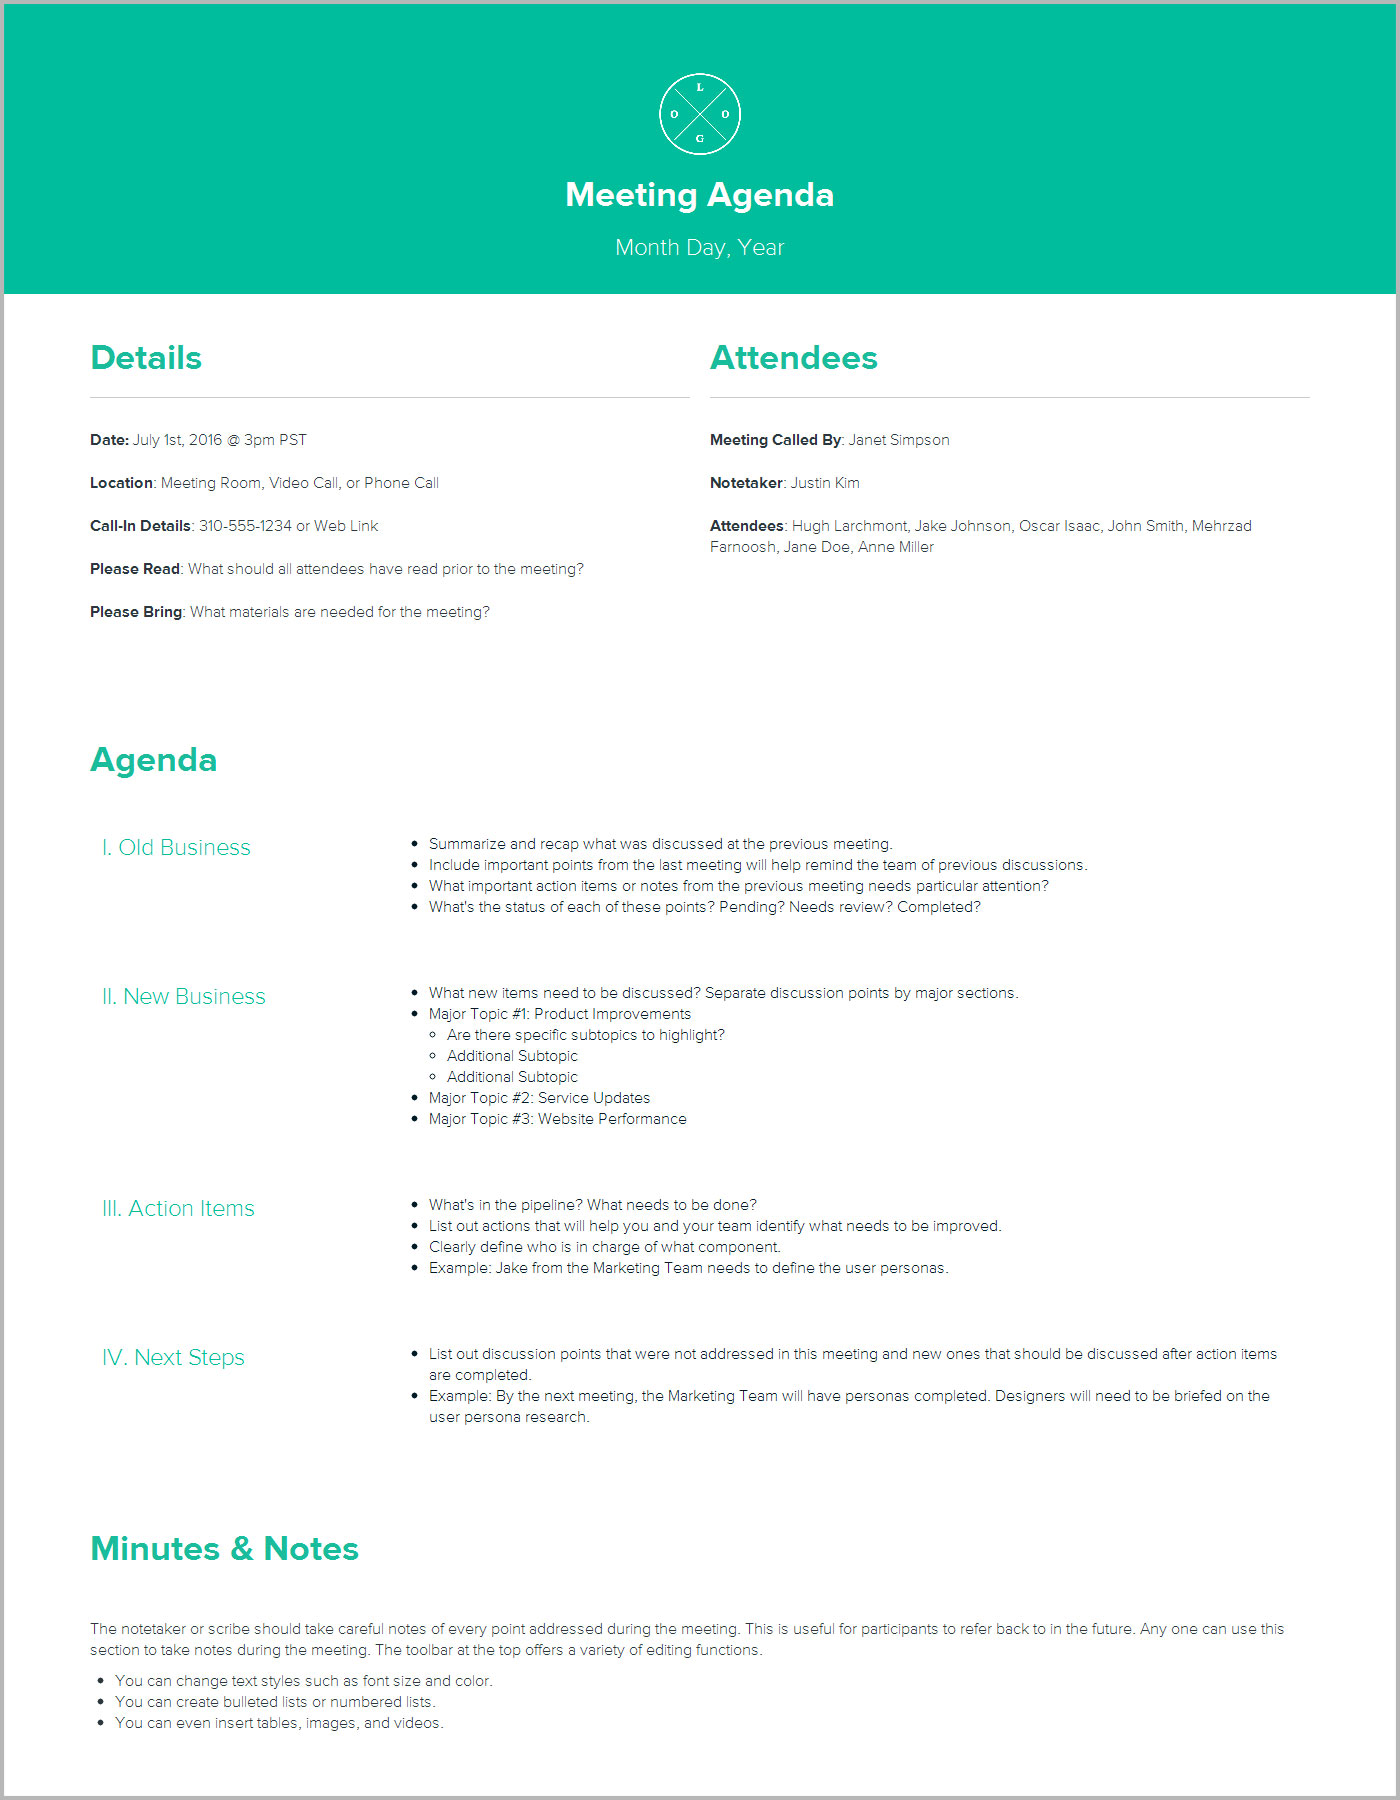 Meeting Agenda Template By Xtensio  Meeting Outline Template